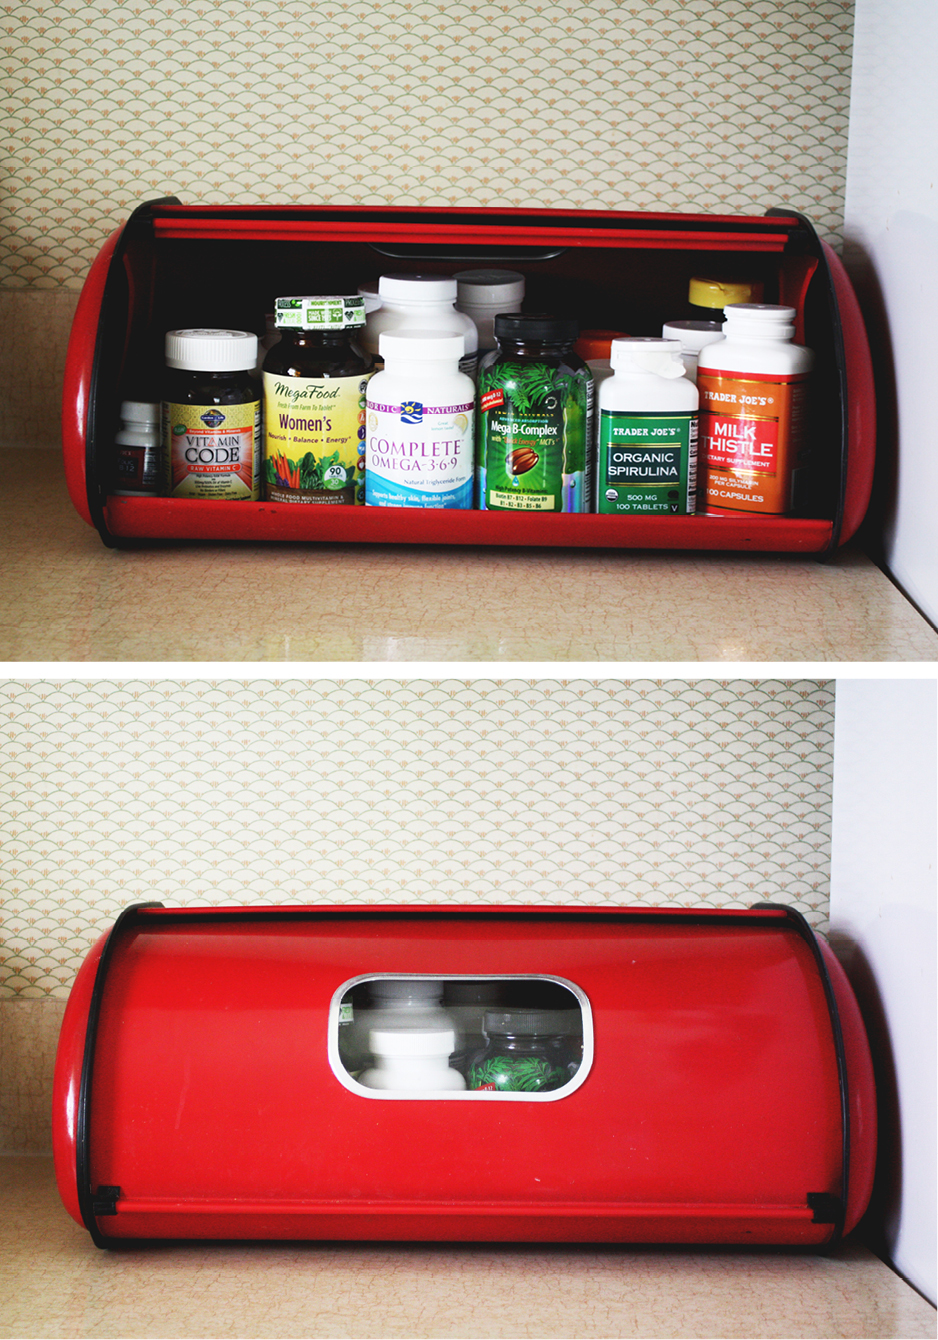 Bread Box As Pill Bottle Storage House Mix